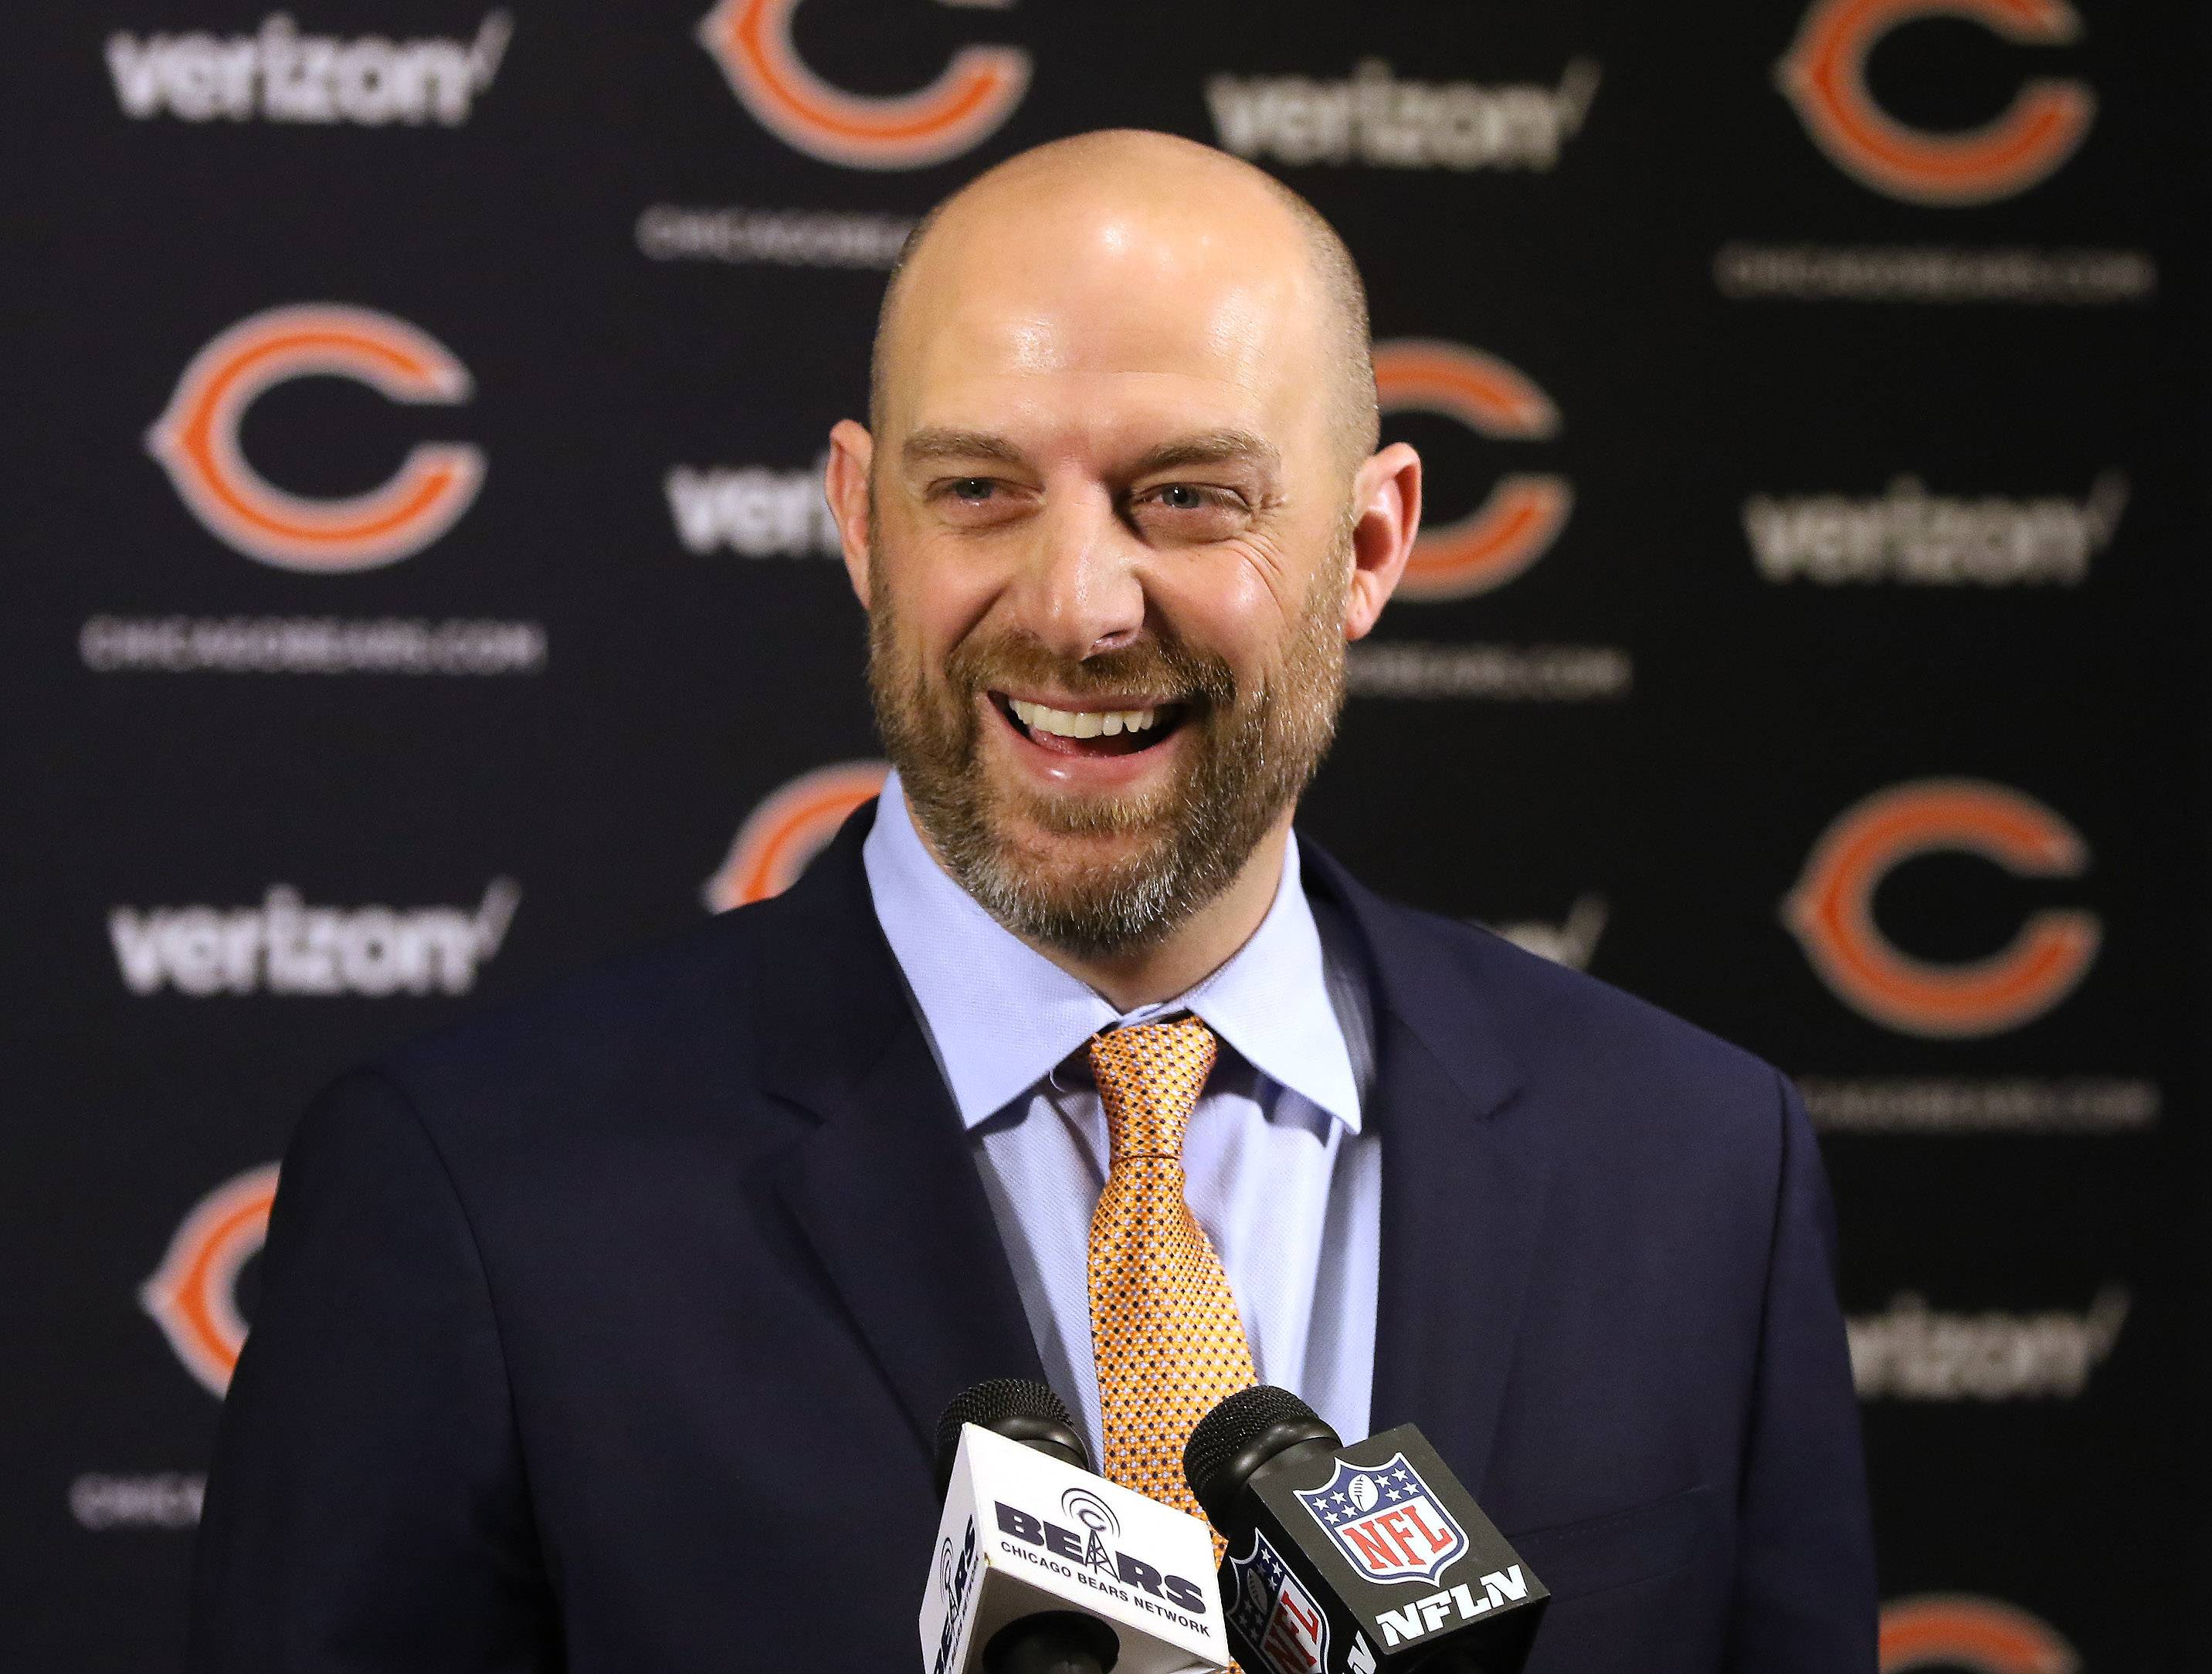 Chicago Bears head coach Matt Nagy made quite an impression among the recent free agents who signed with the team.